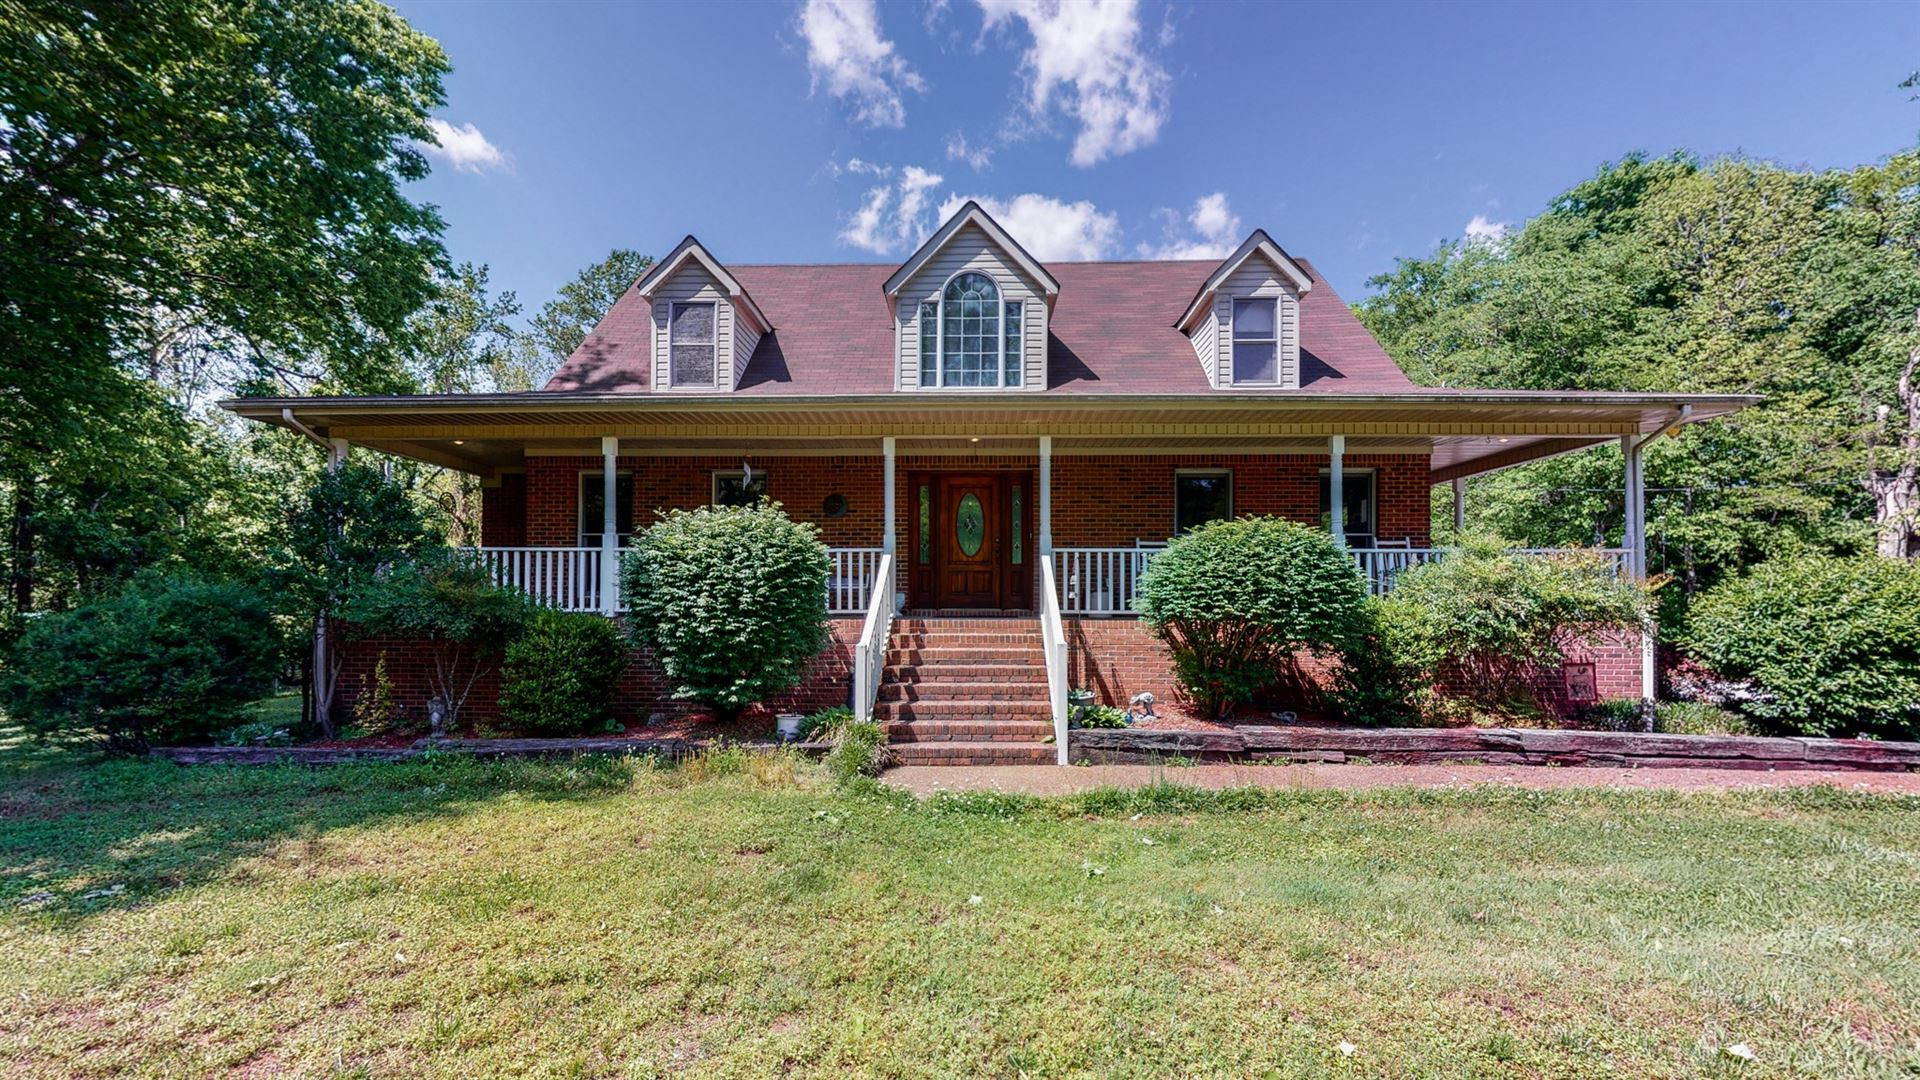 Photo of 2300 Lee Rd, Spring Hill, TN 37174 (MLS # 2252909)